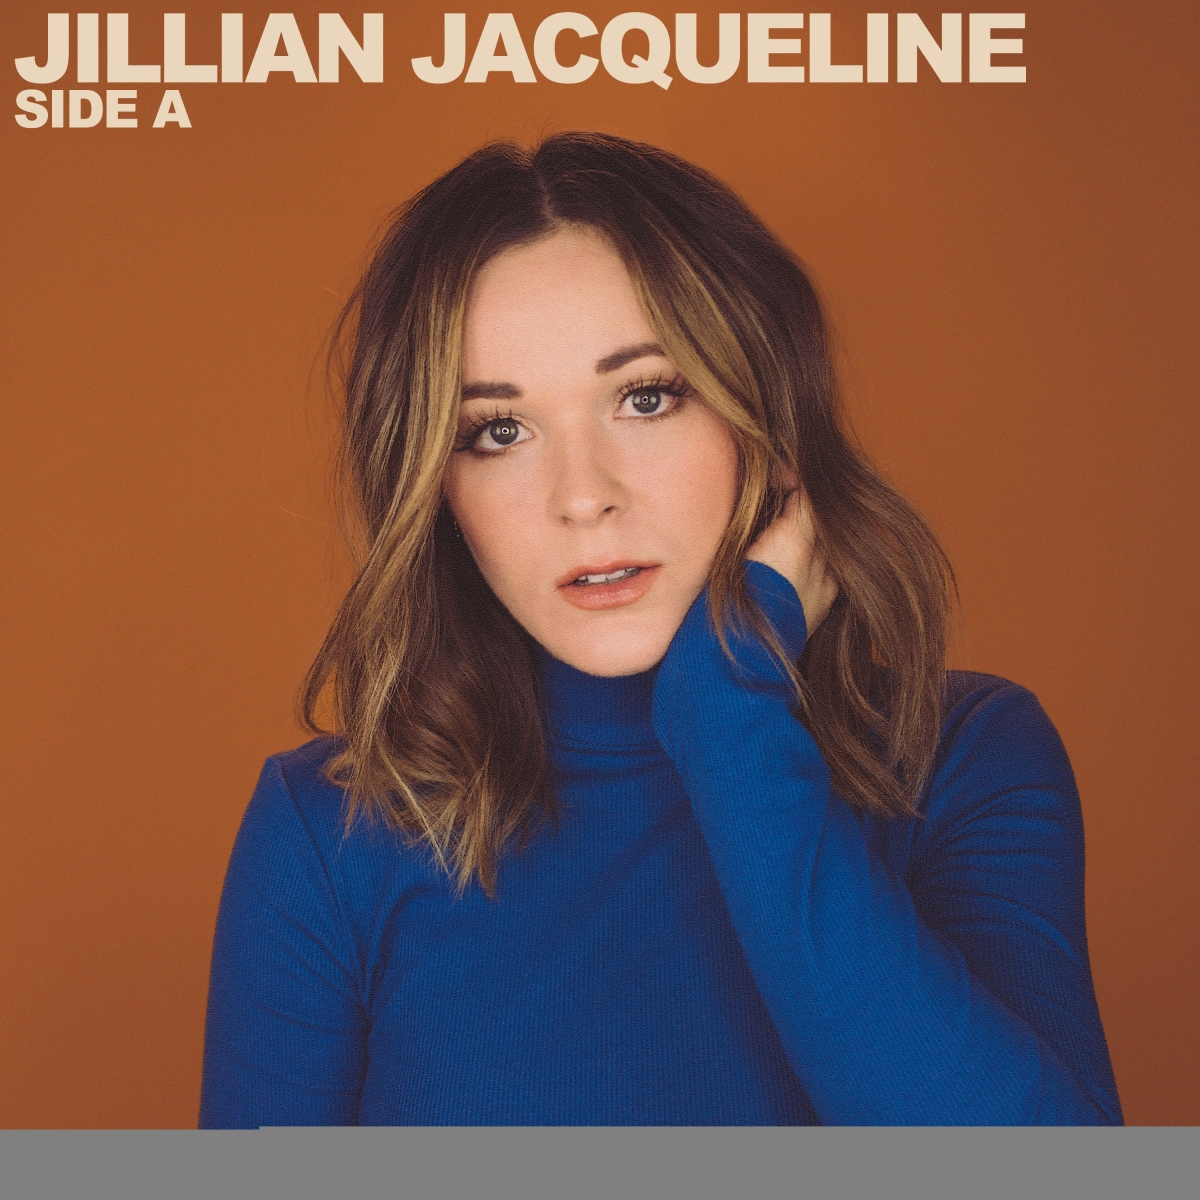 Jillian Jacqueline - Side A - Review